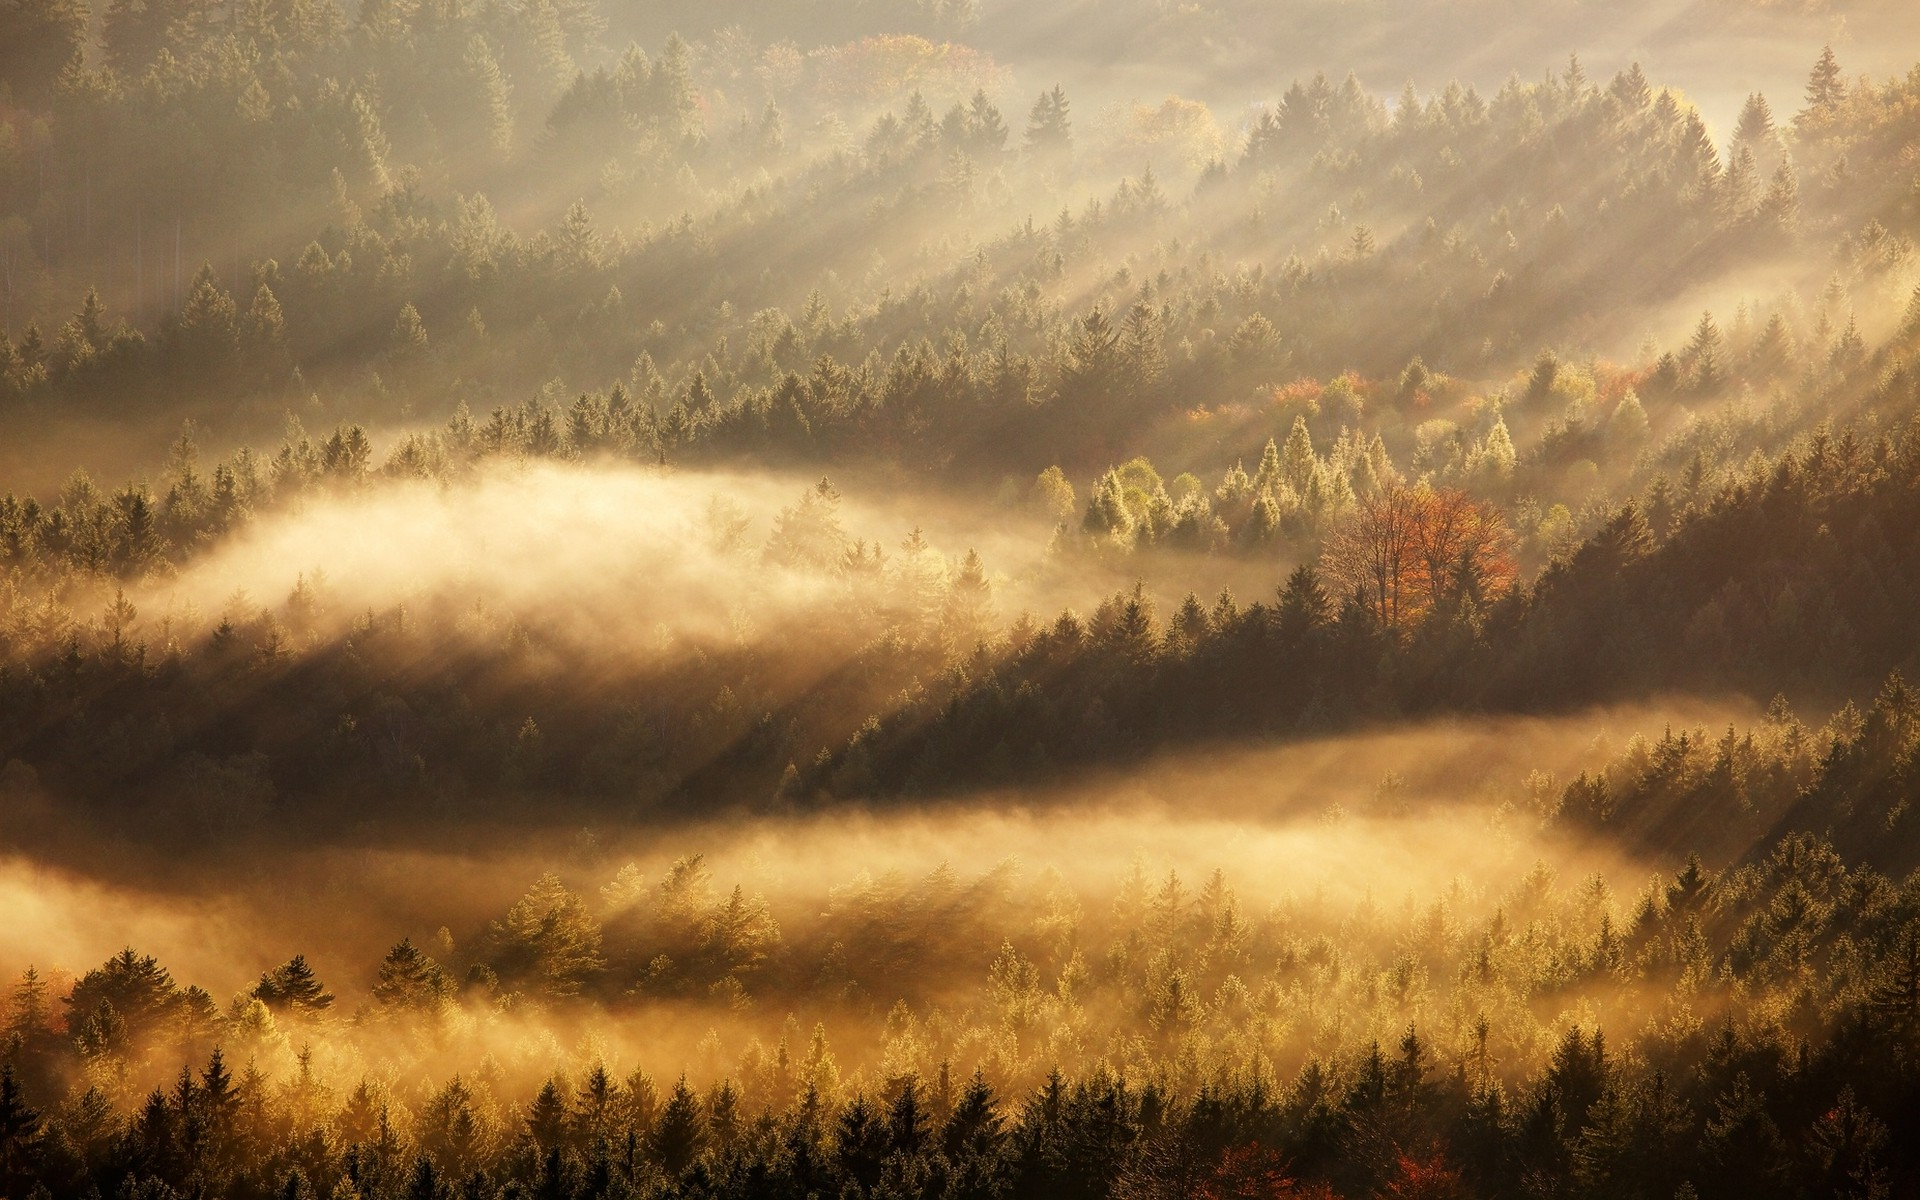 Uhd Wallpapers Fall Nature Landscape Mist Sunrise Fall Forest Sun Rays